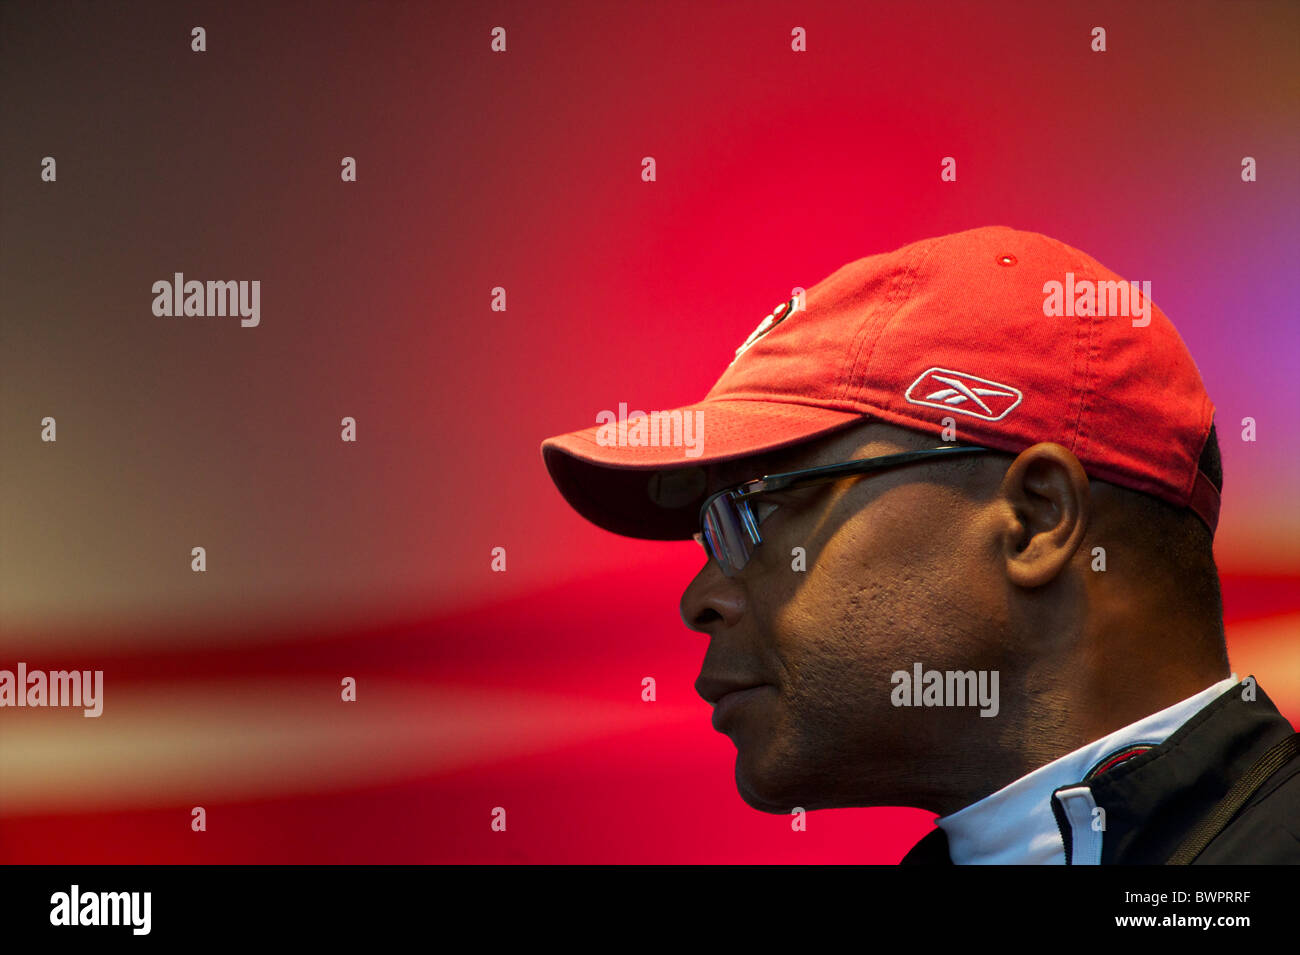 Hall of Fame player and current San Francisco 49er head coach Mike Singletary addresses fans during the NFL rally - Stock Image